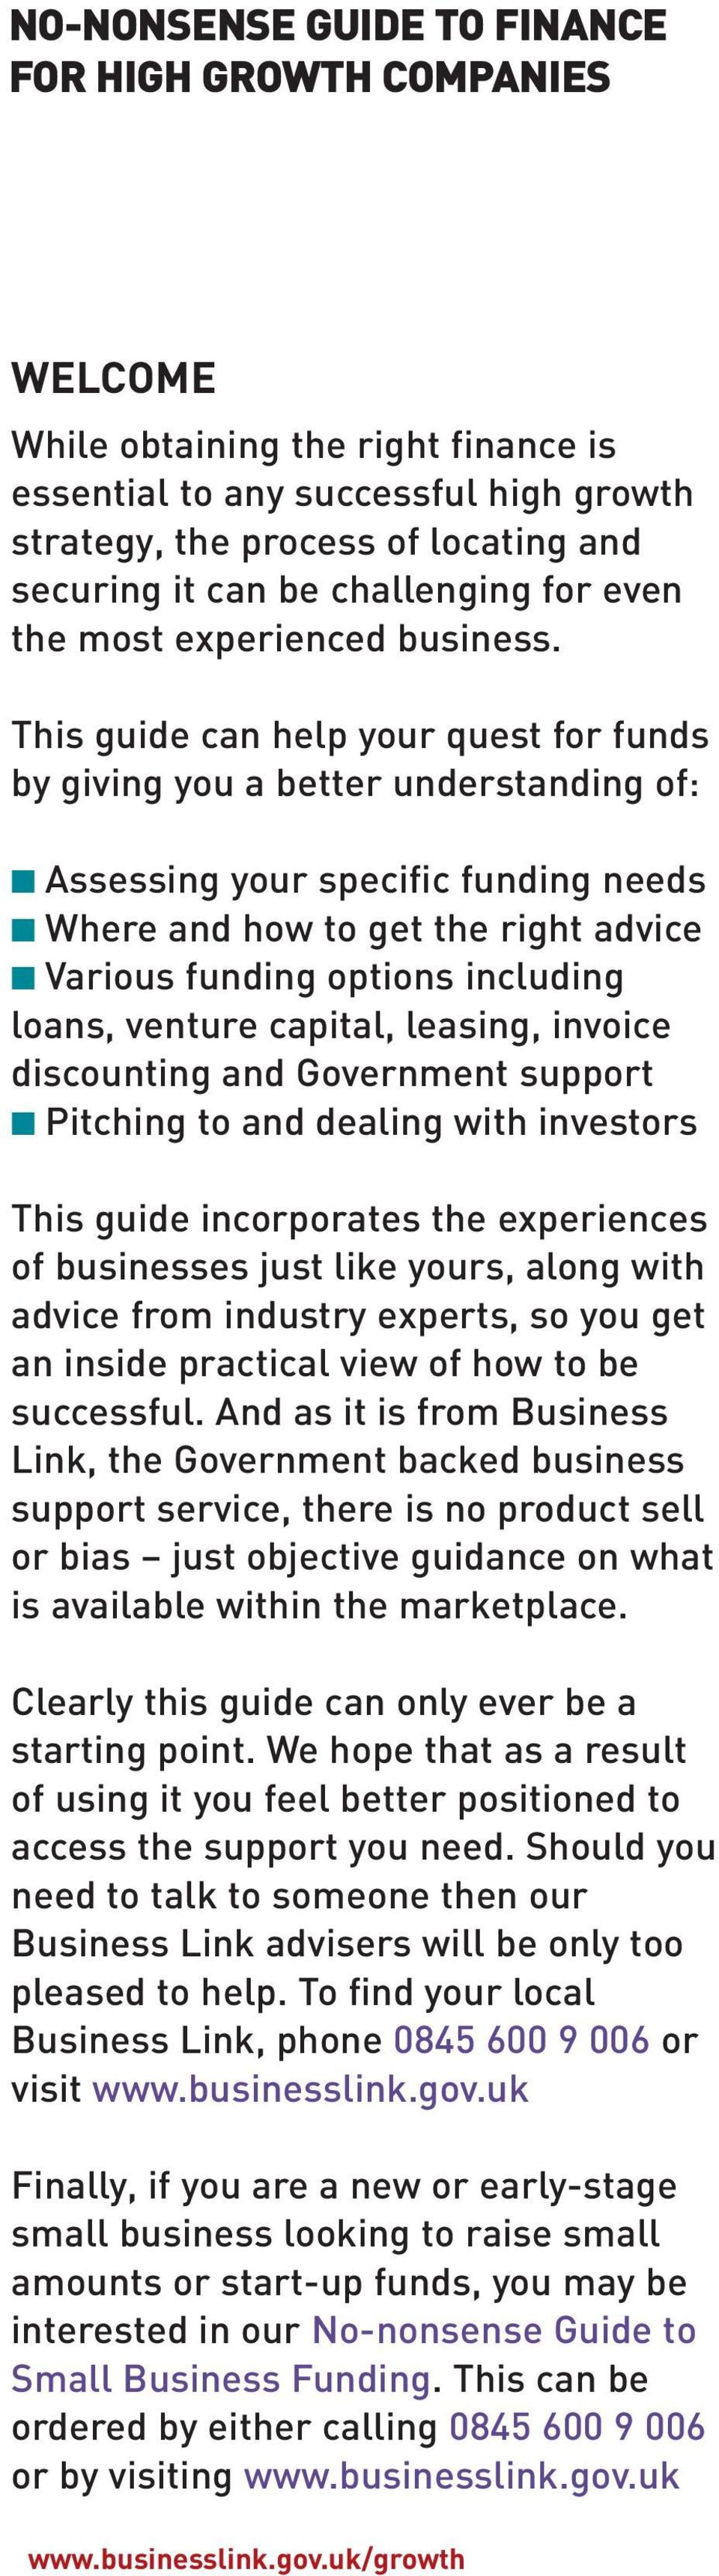 This guide can help your quest for funds by giving you a better understanding of: Assessing your specific funding needs Where and how to get the right advice Various funding options including loans,